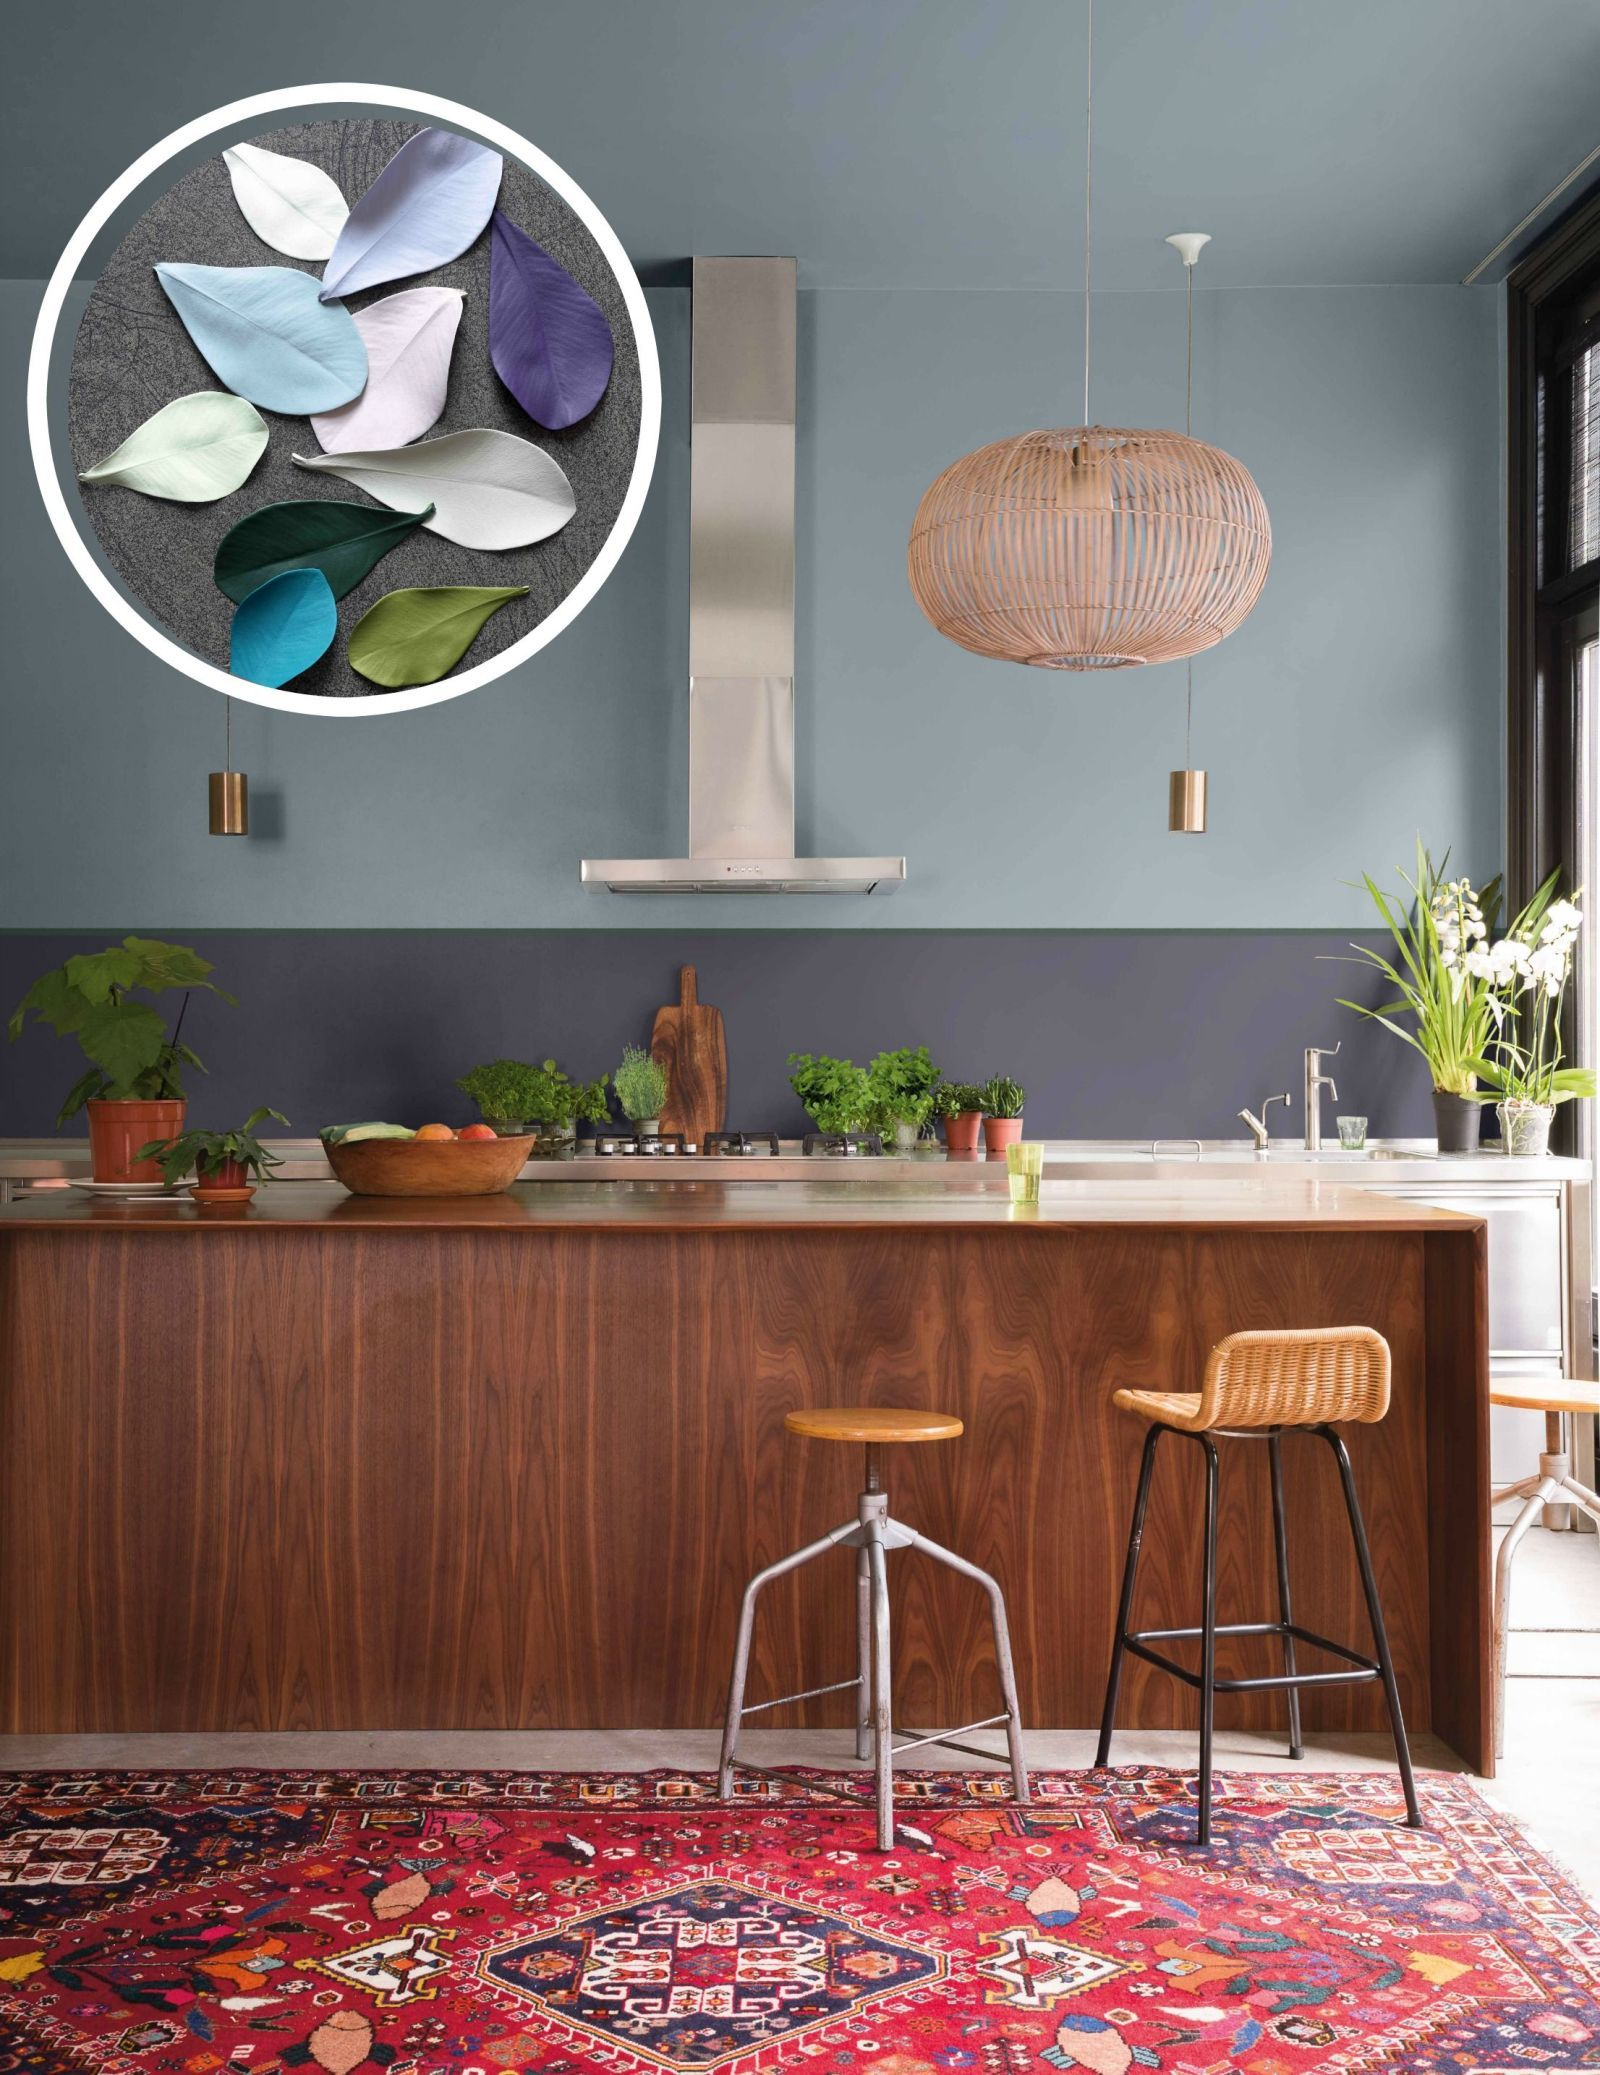 Dulux\'s Colour of the Year 2017 announced | Pinterest | Küche